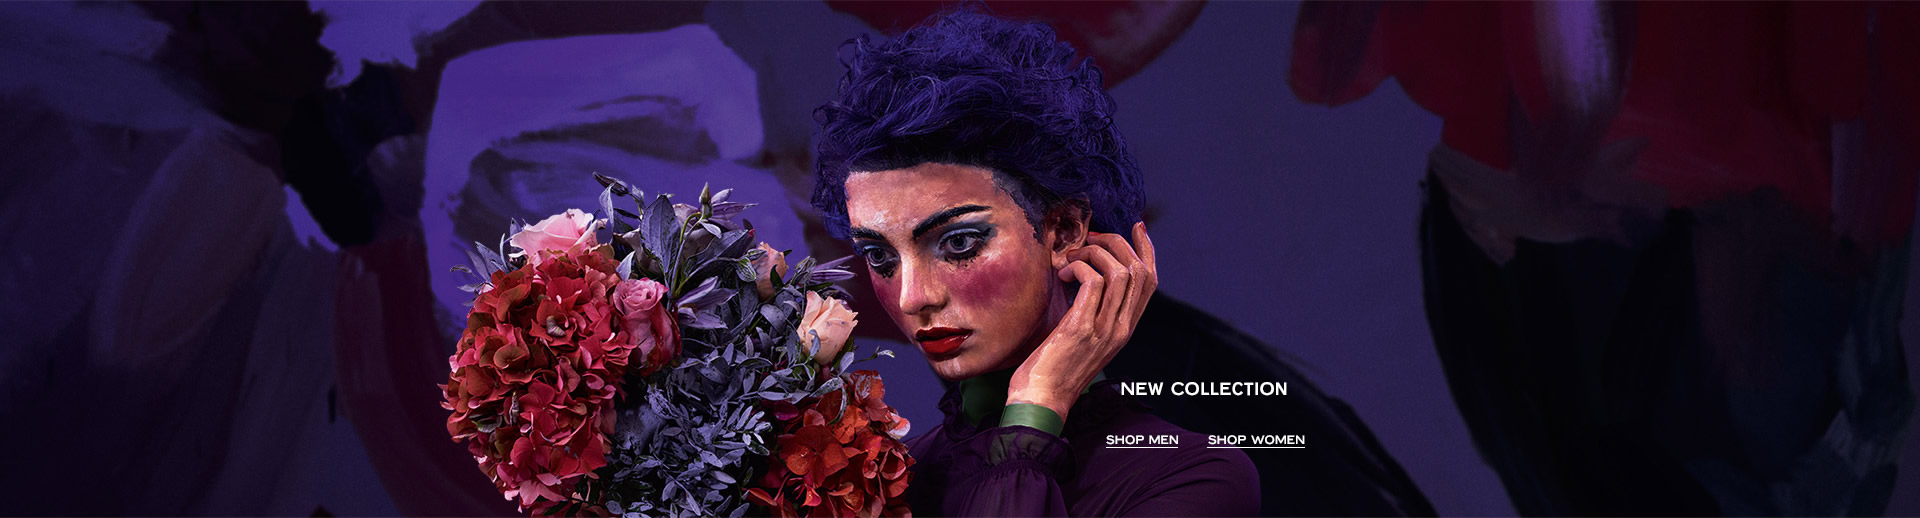 MARTA NEW COLLECTION